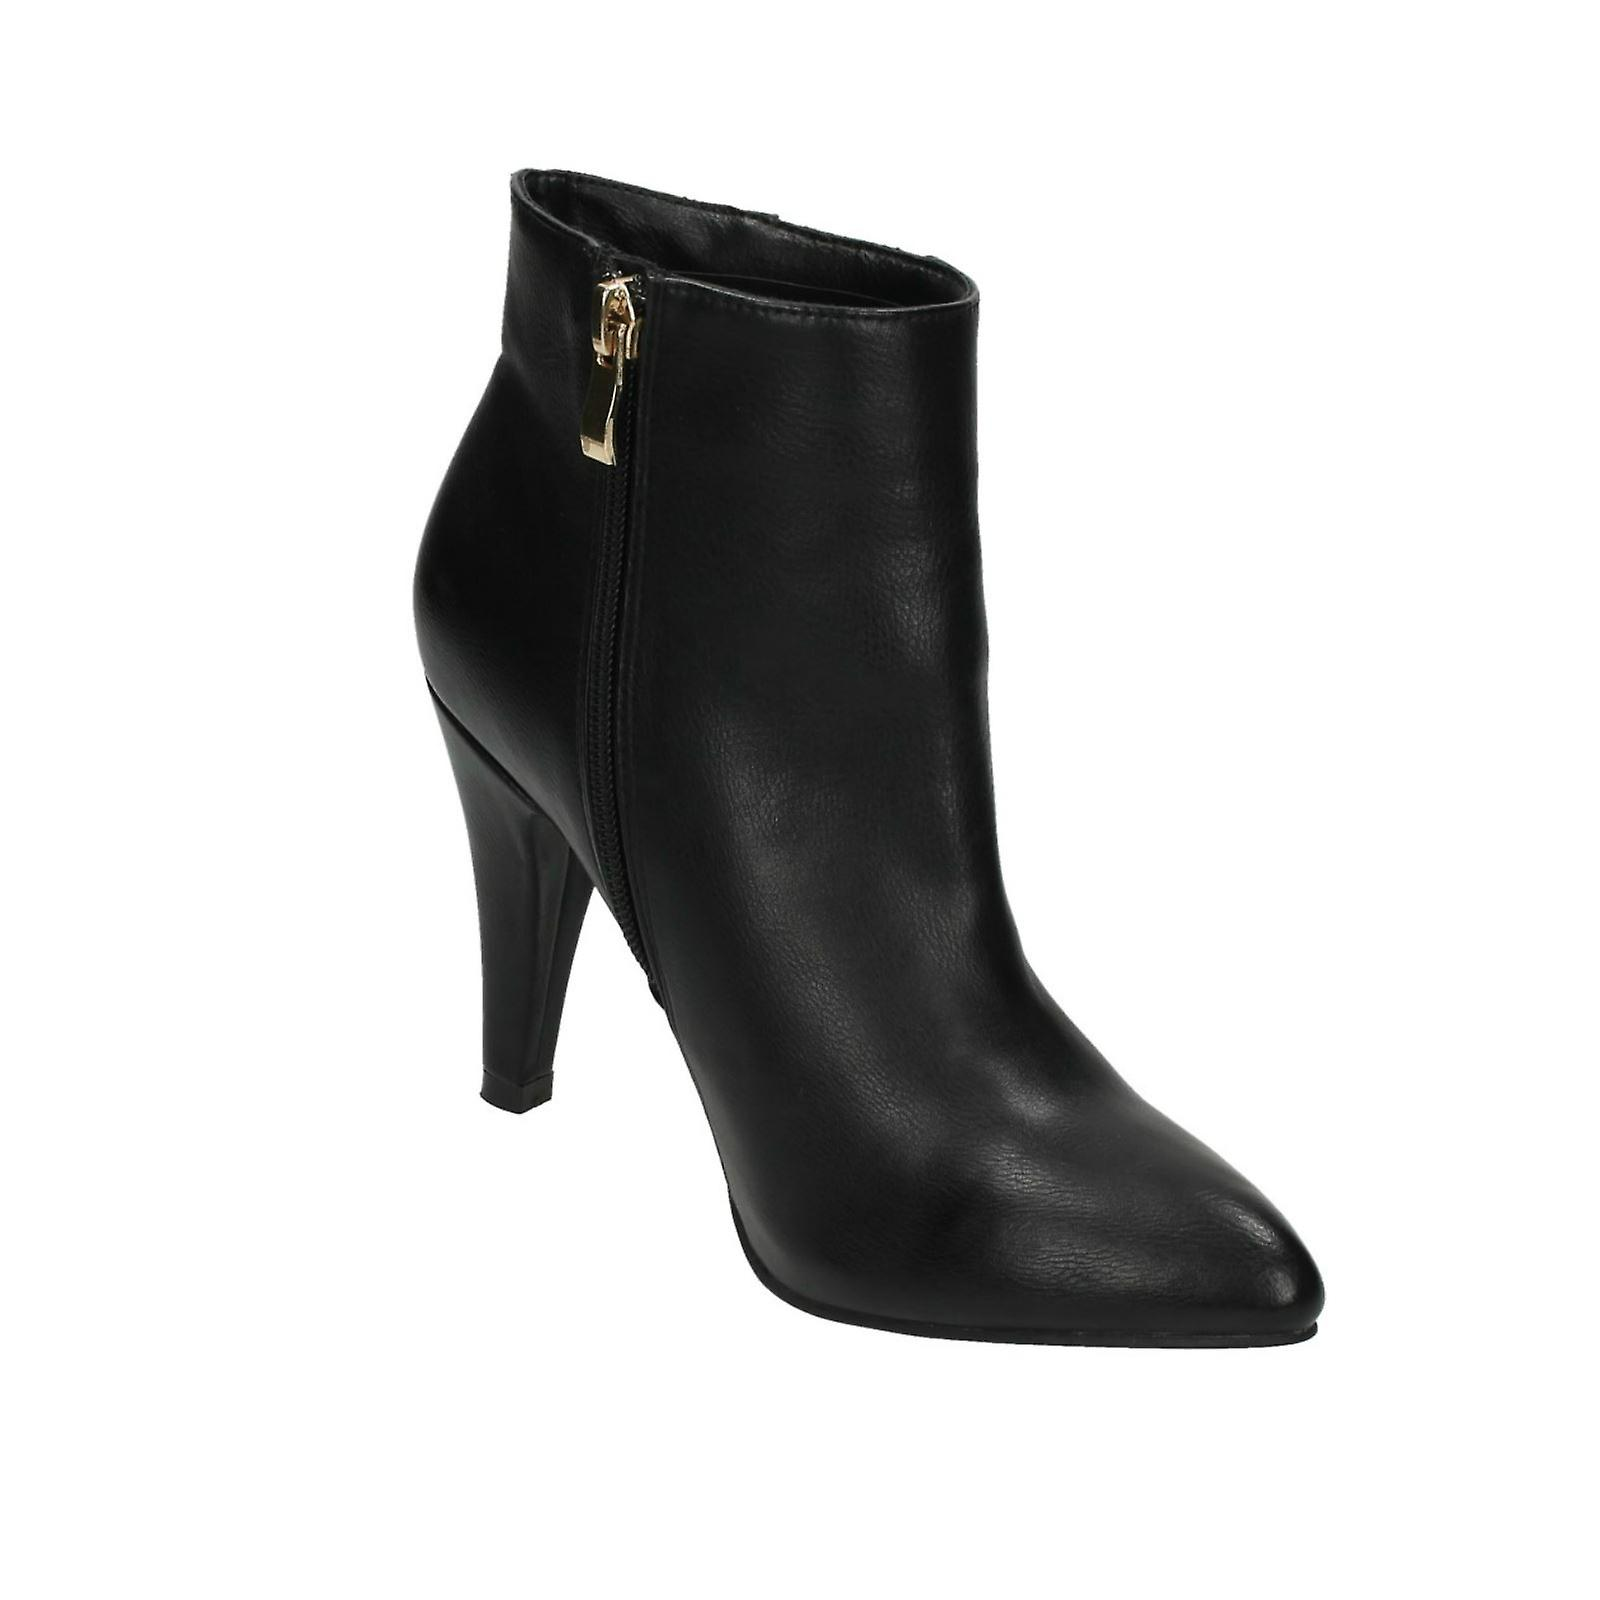 Clothes, Shoes & Accessories Ladies Spot On High Heel Ankle Boots 'F50332' Women's Shoes